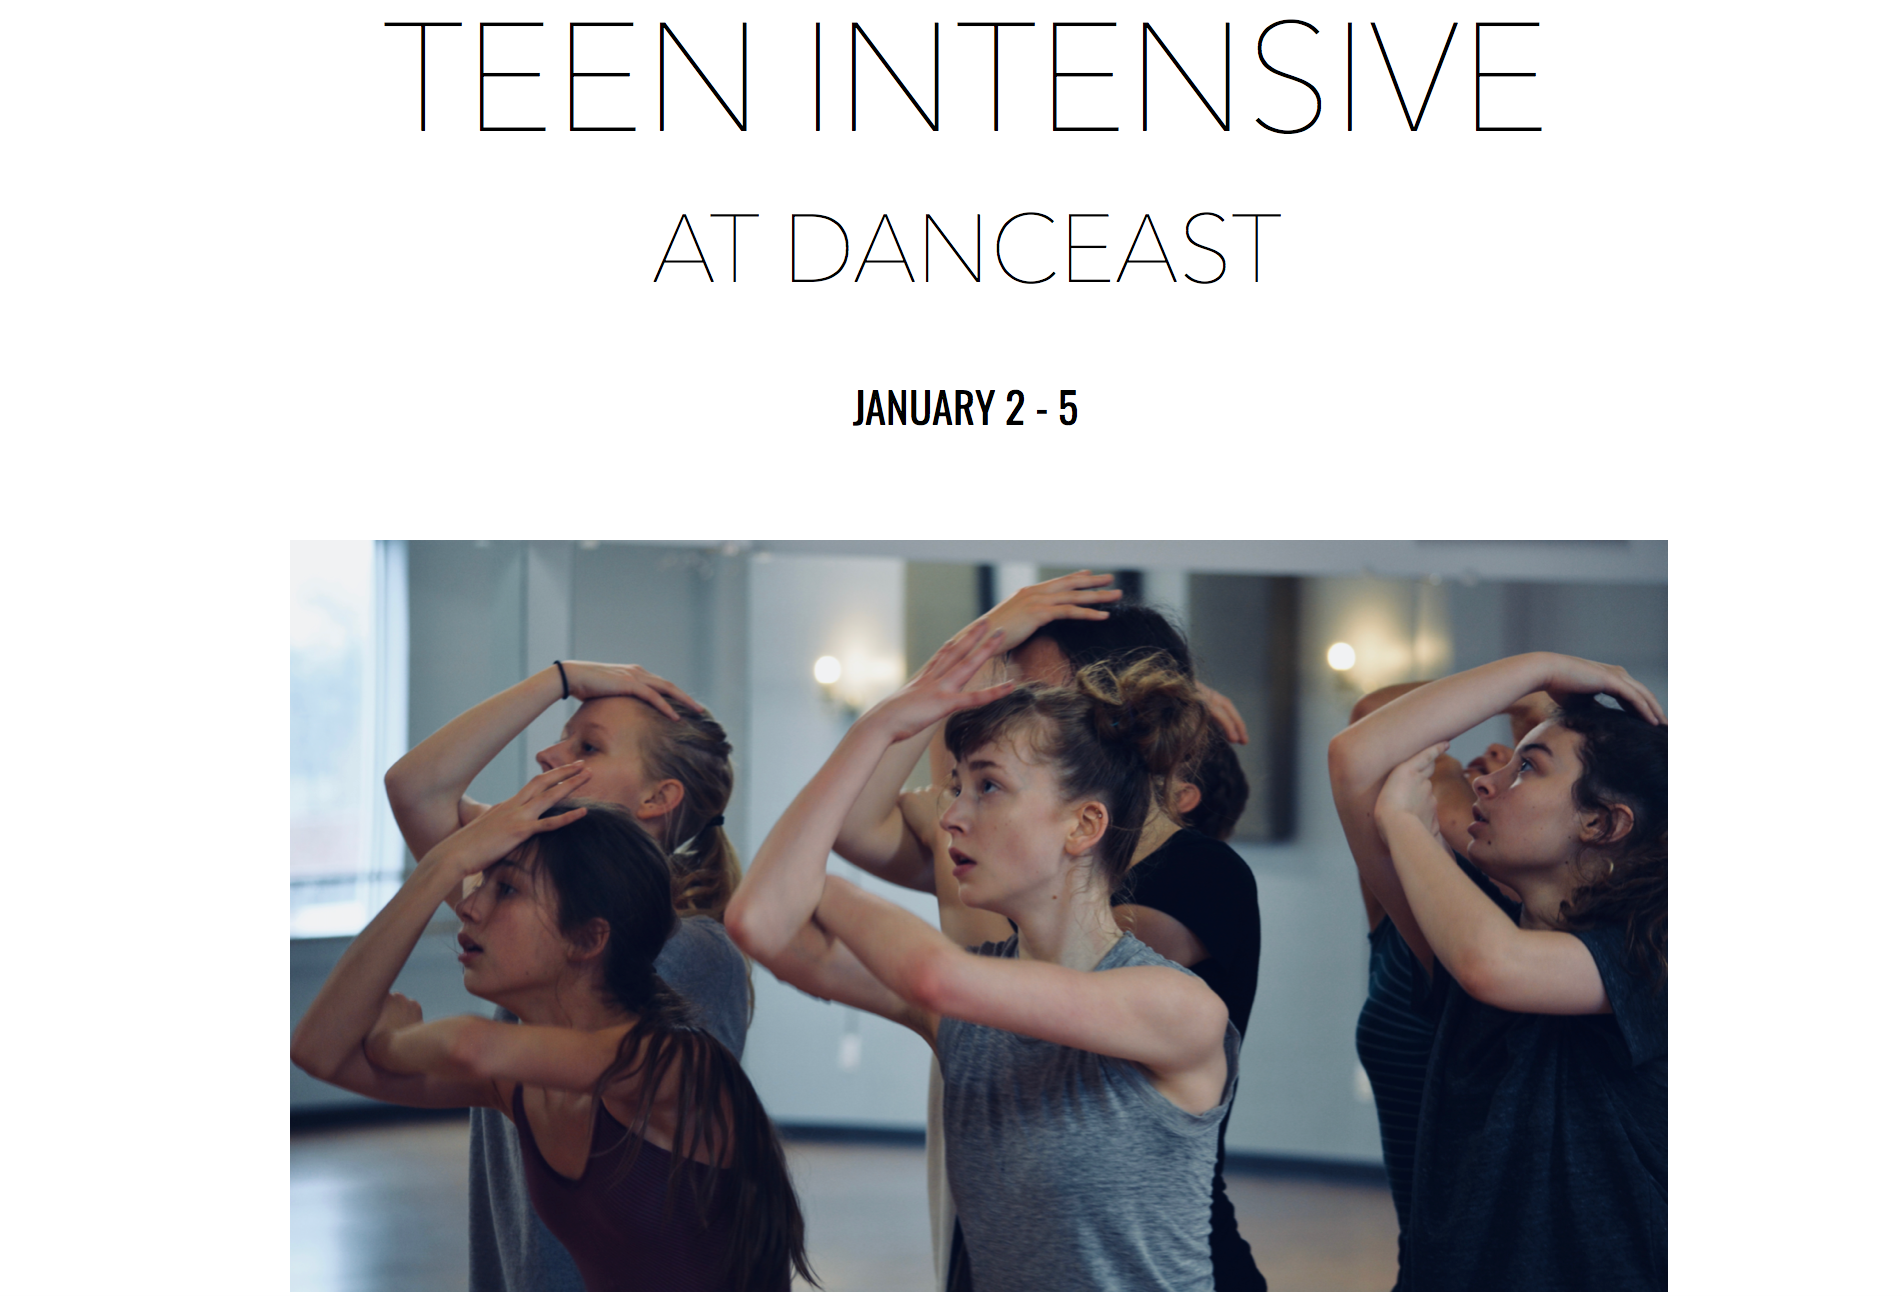 Copy of Teen Intensive  |  January 2 - 5, 2019